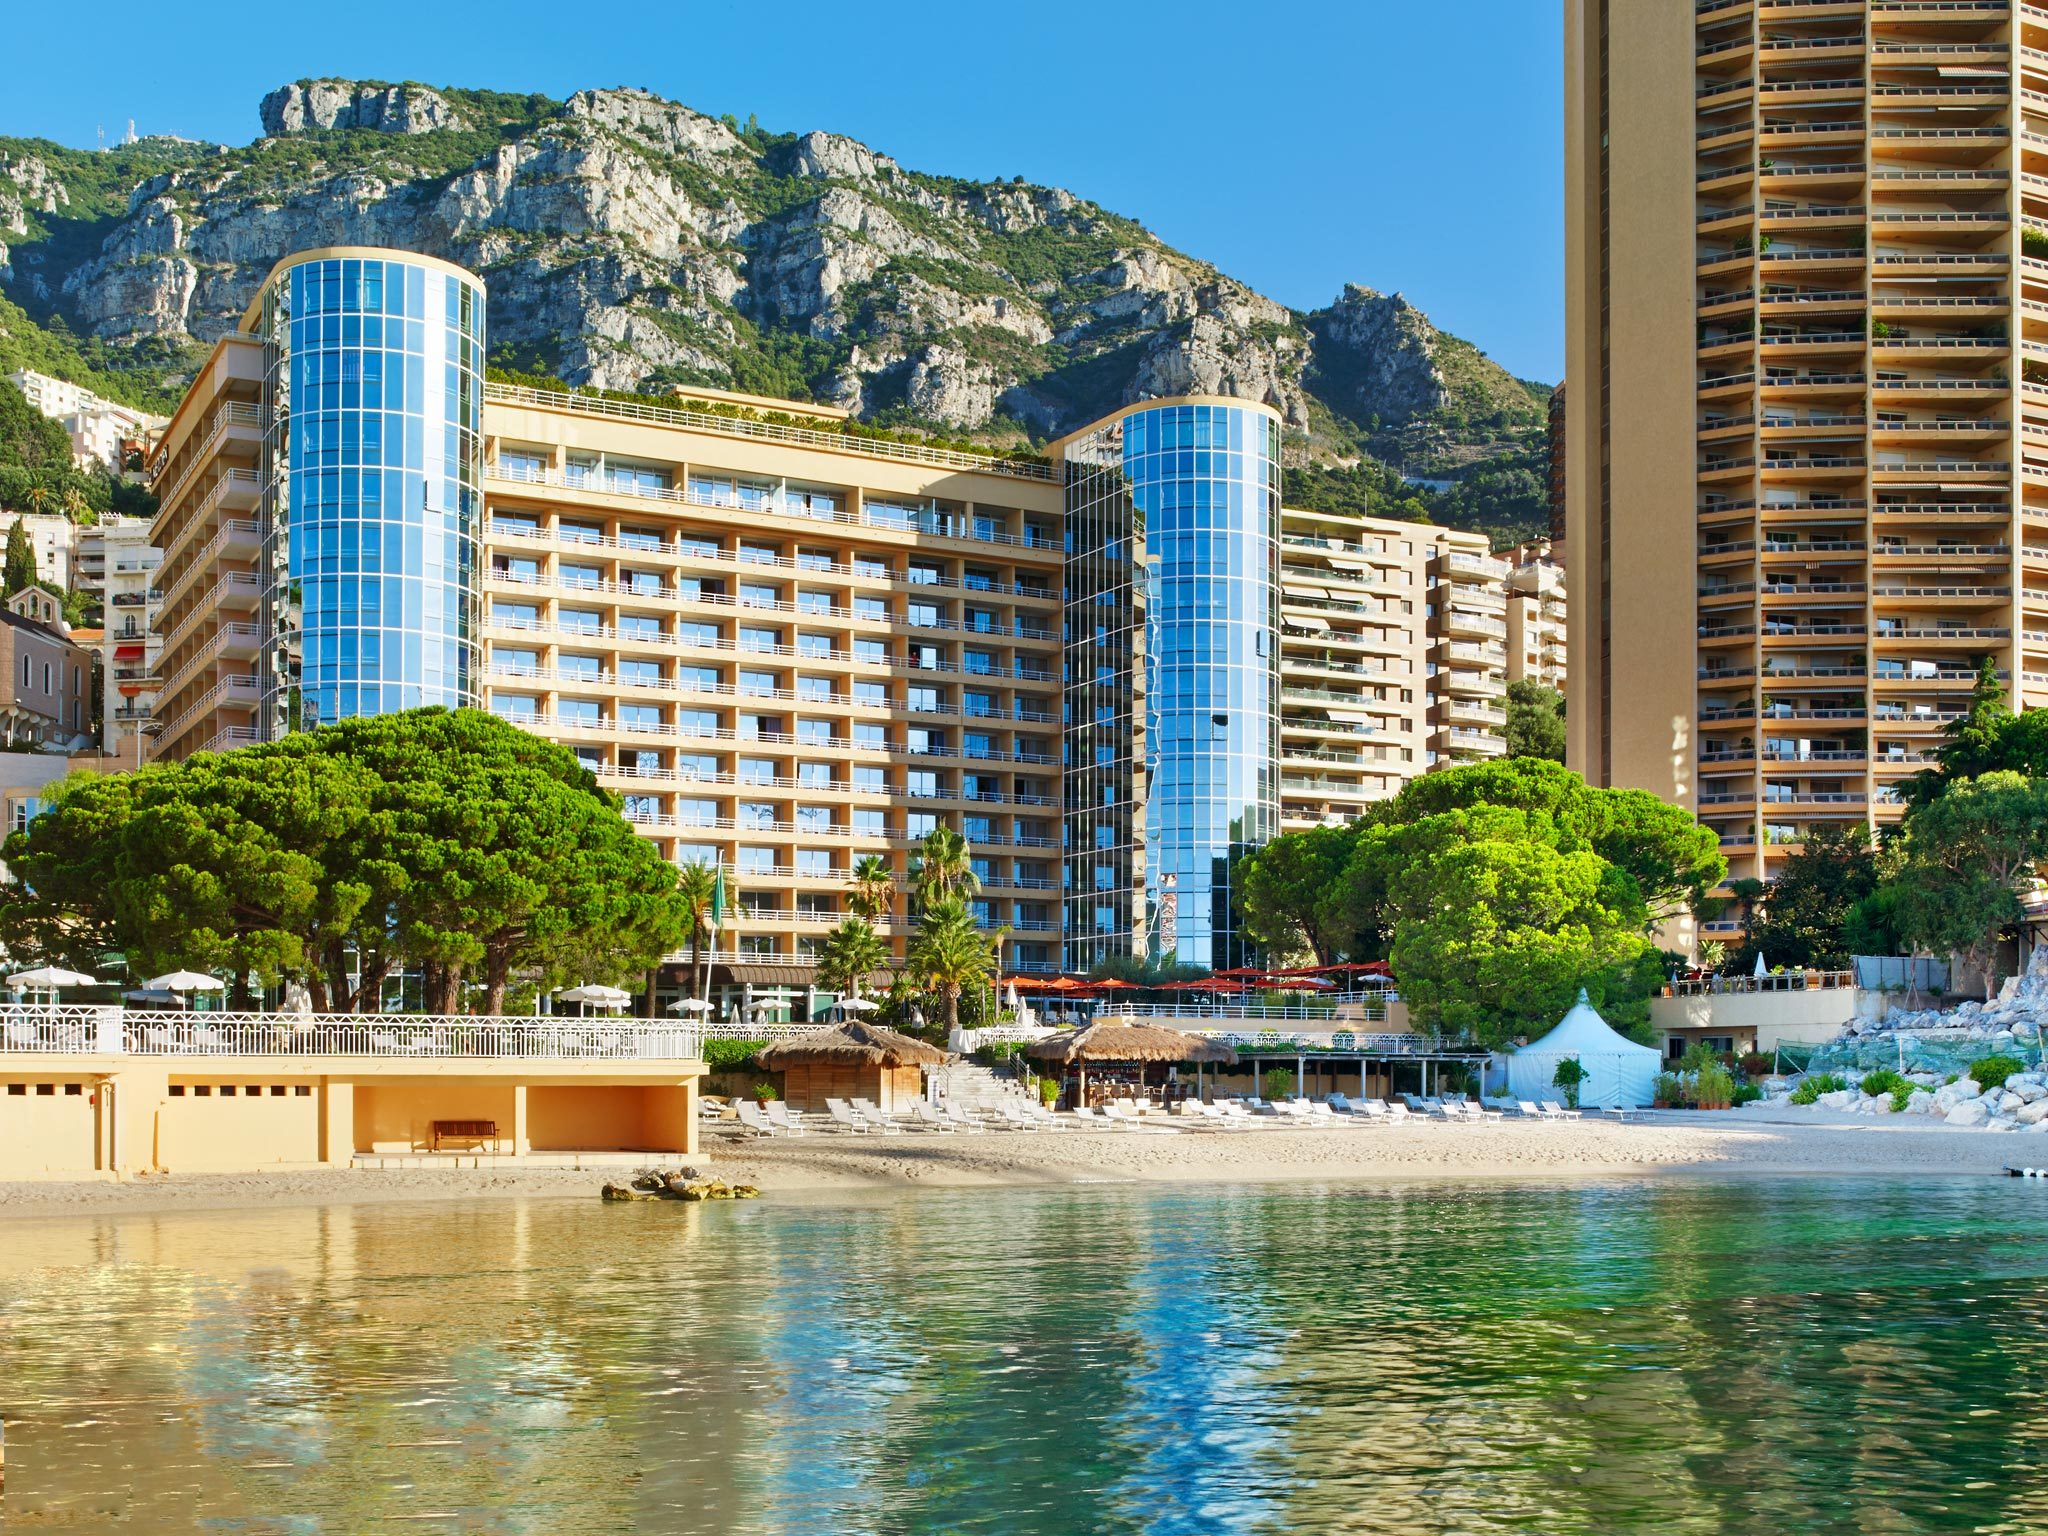 Monaco Grand Prix 2020 - 4 Nights Le Meridien Plaza 4* and VIP Hospitality - Front Row Events